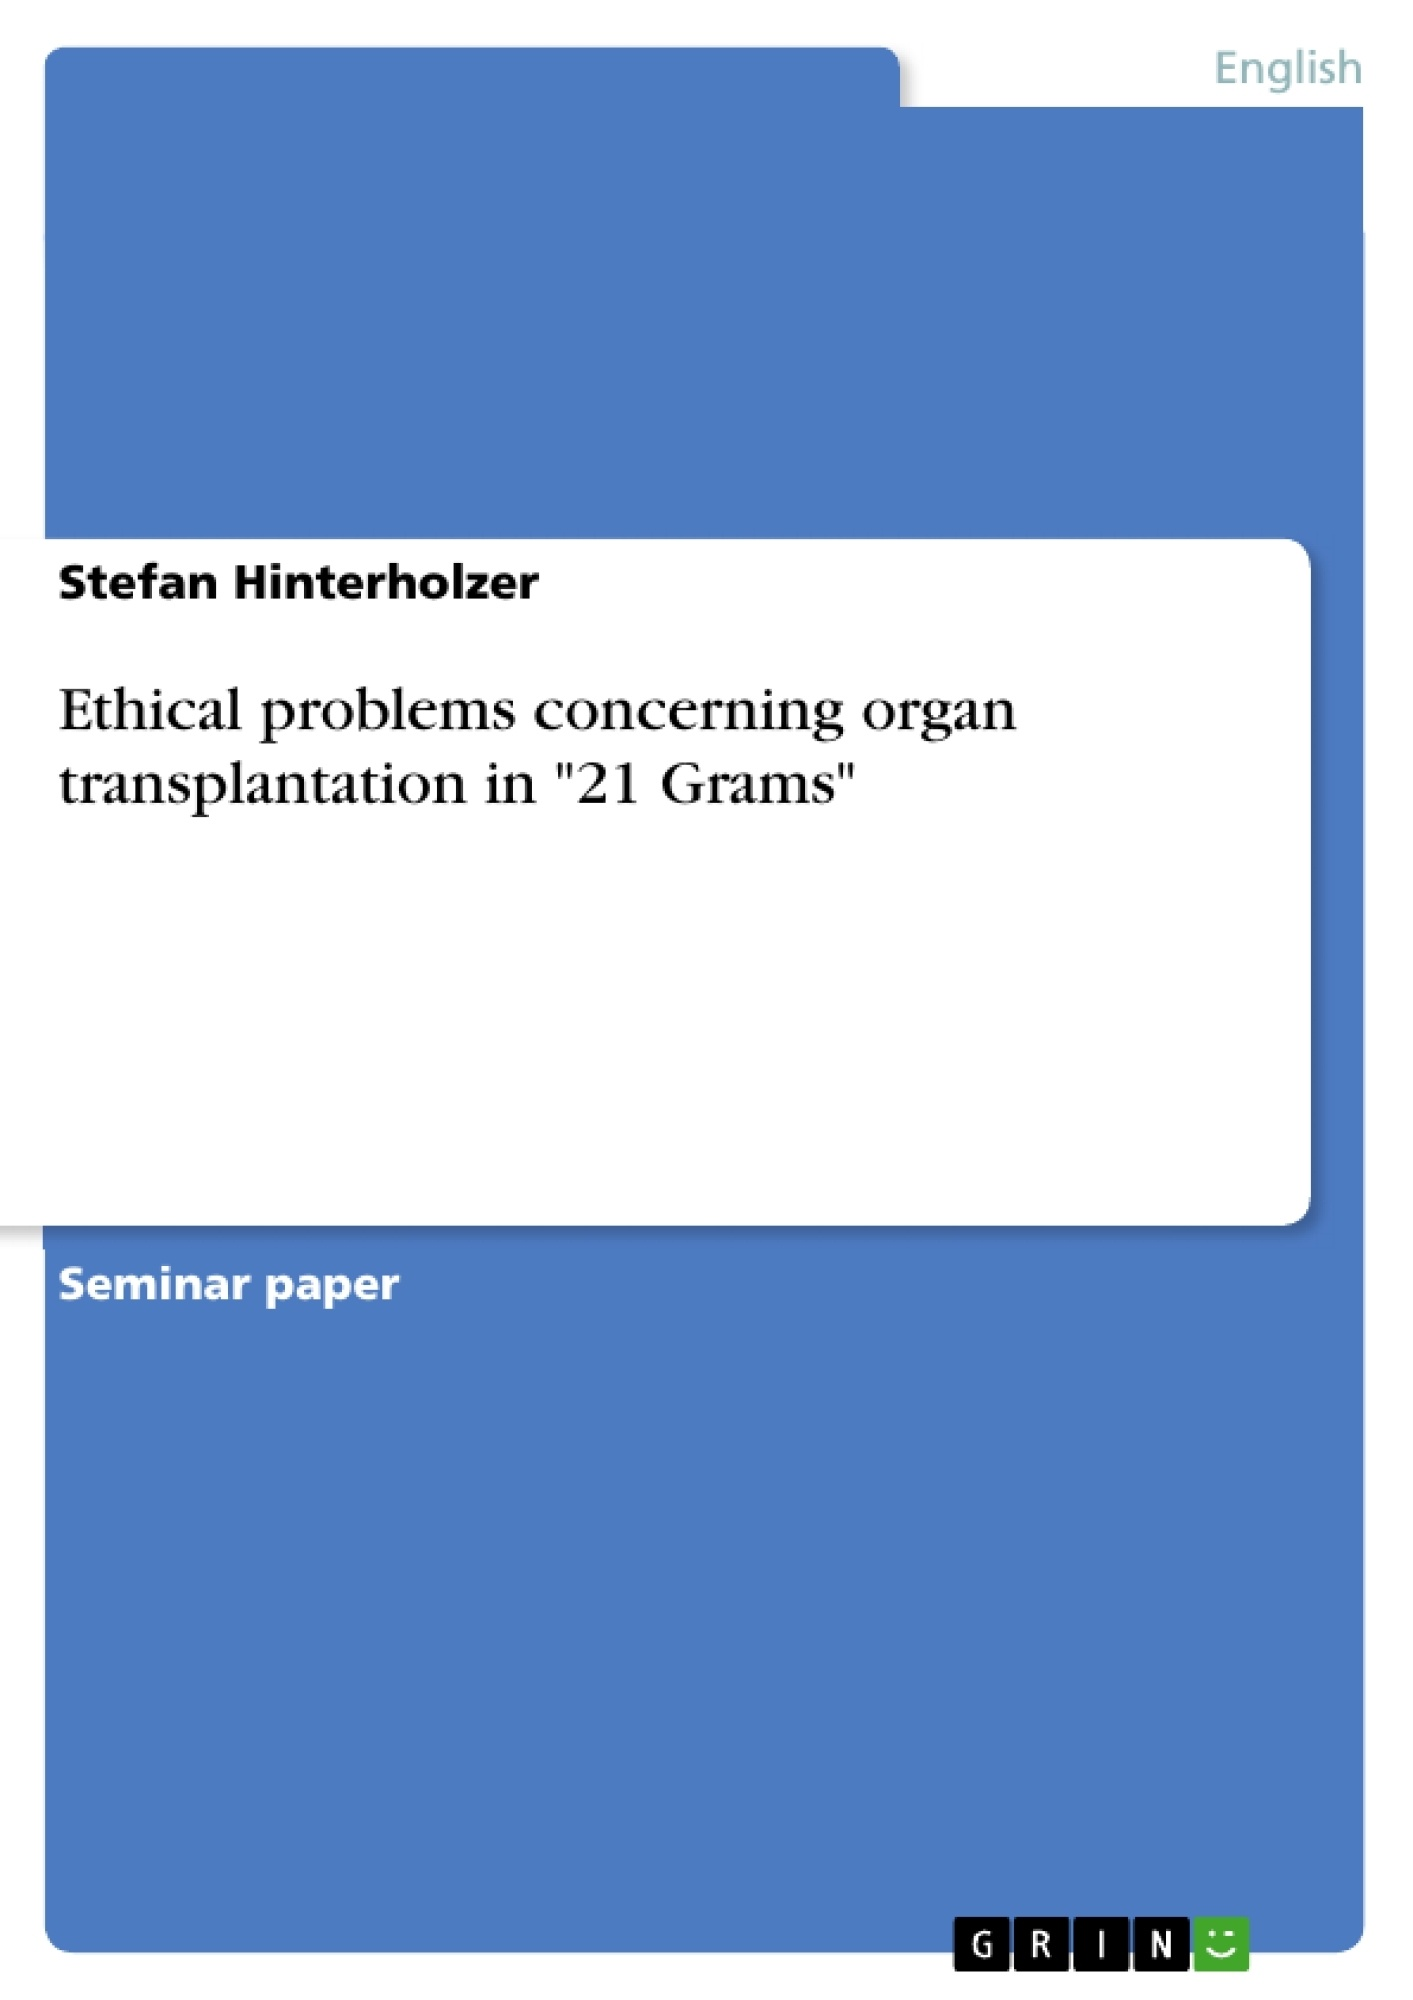 organ donation essays college essays college application essays  ethical problems concerning organ transplantation in grams ethical problems concerning organ transplantation in 21 grams publish